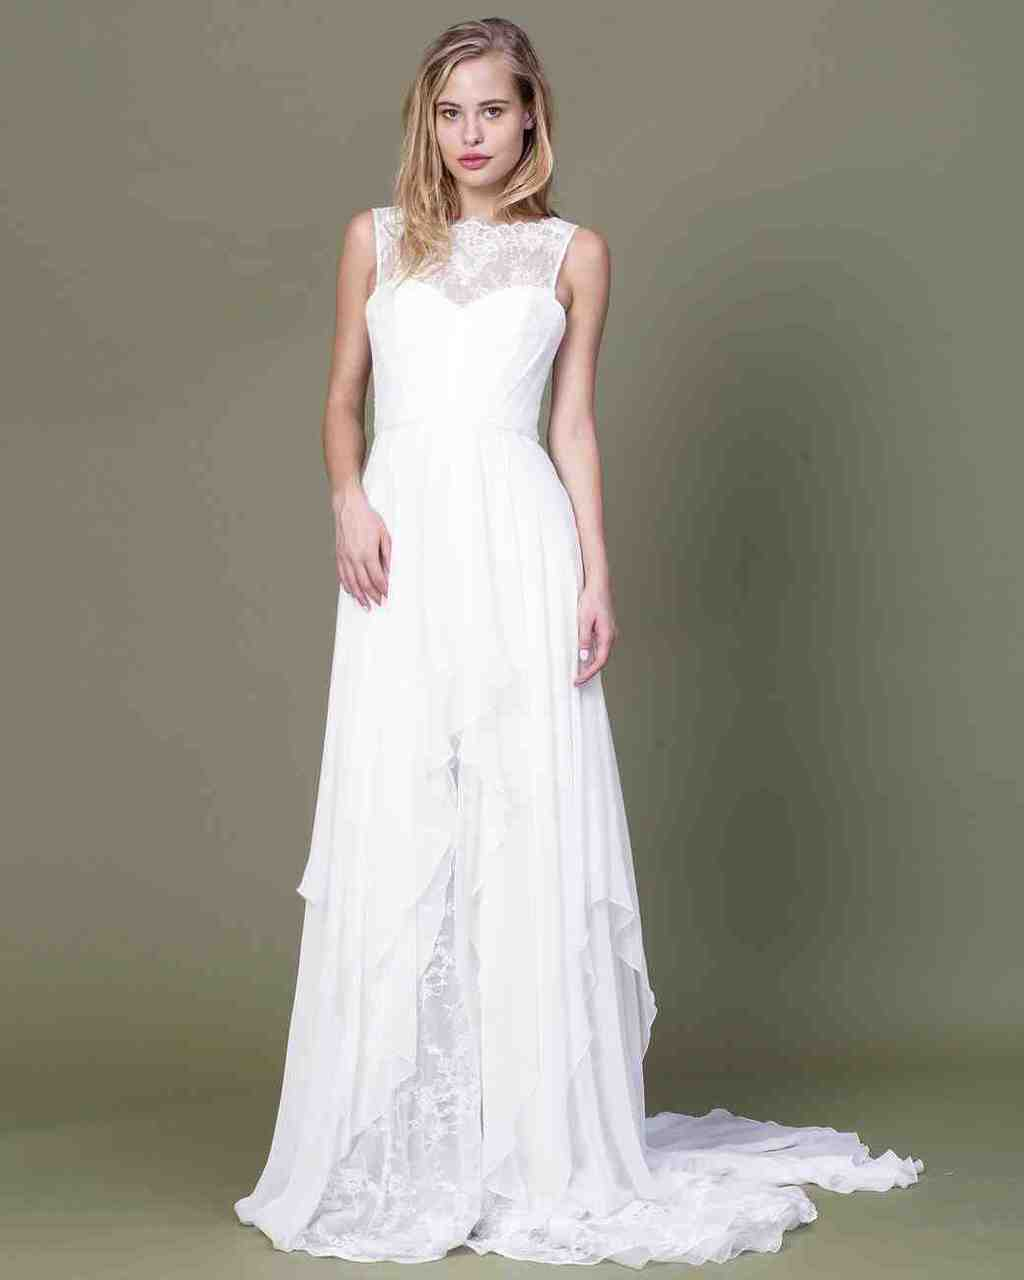 amsale-christos-fall2017-wedding-dress-002_vert